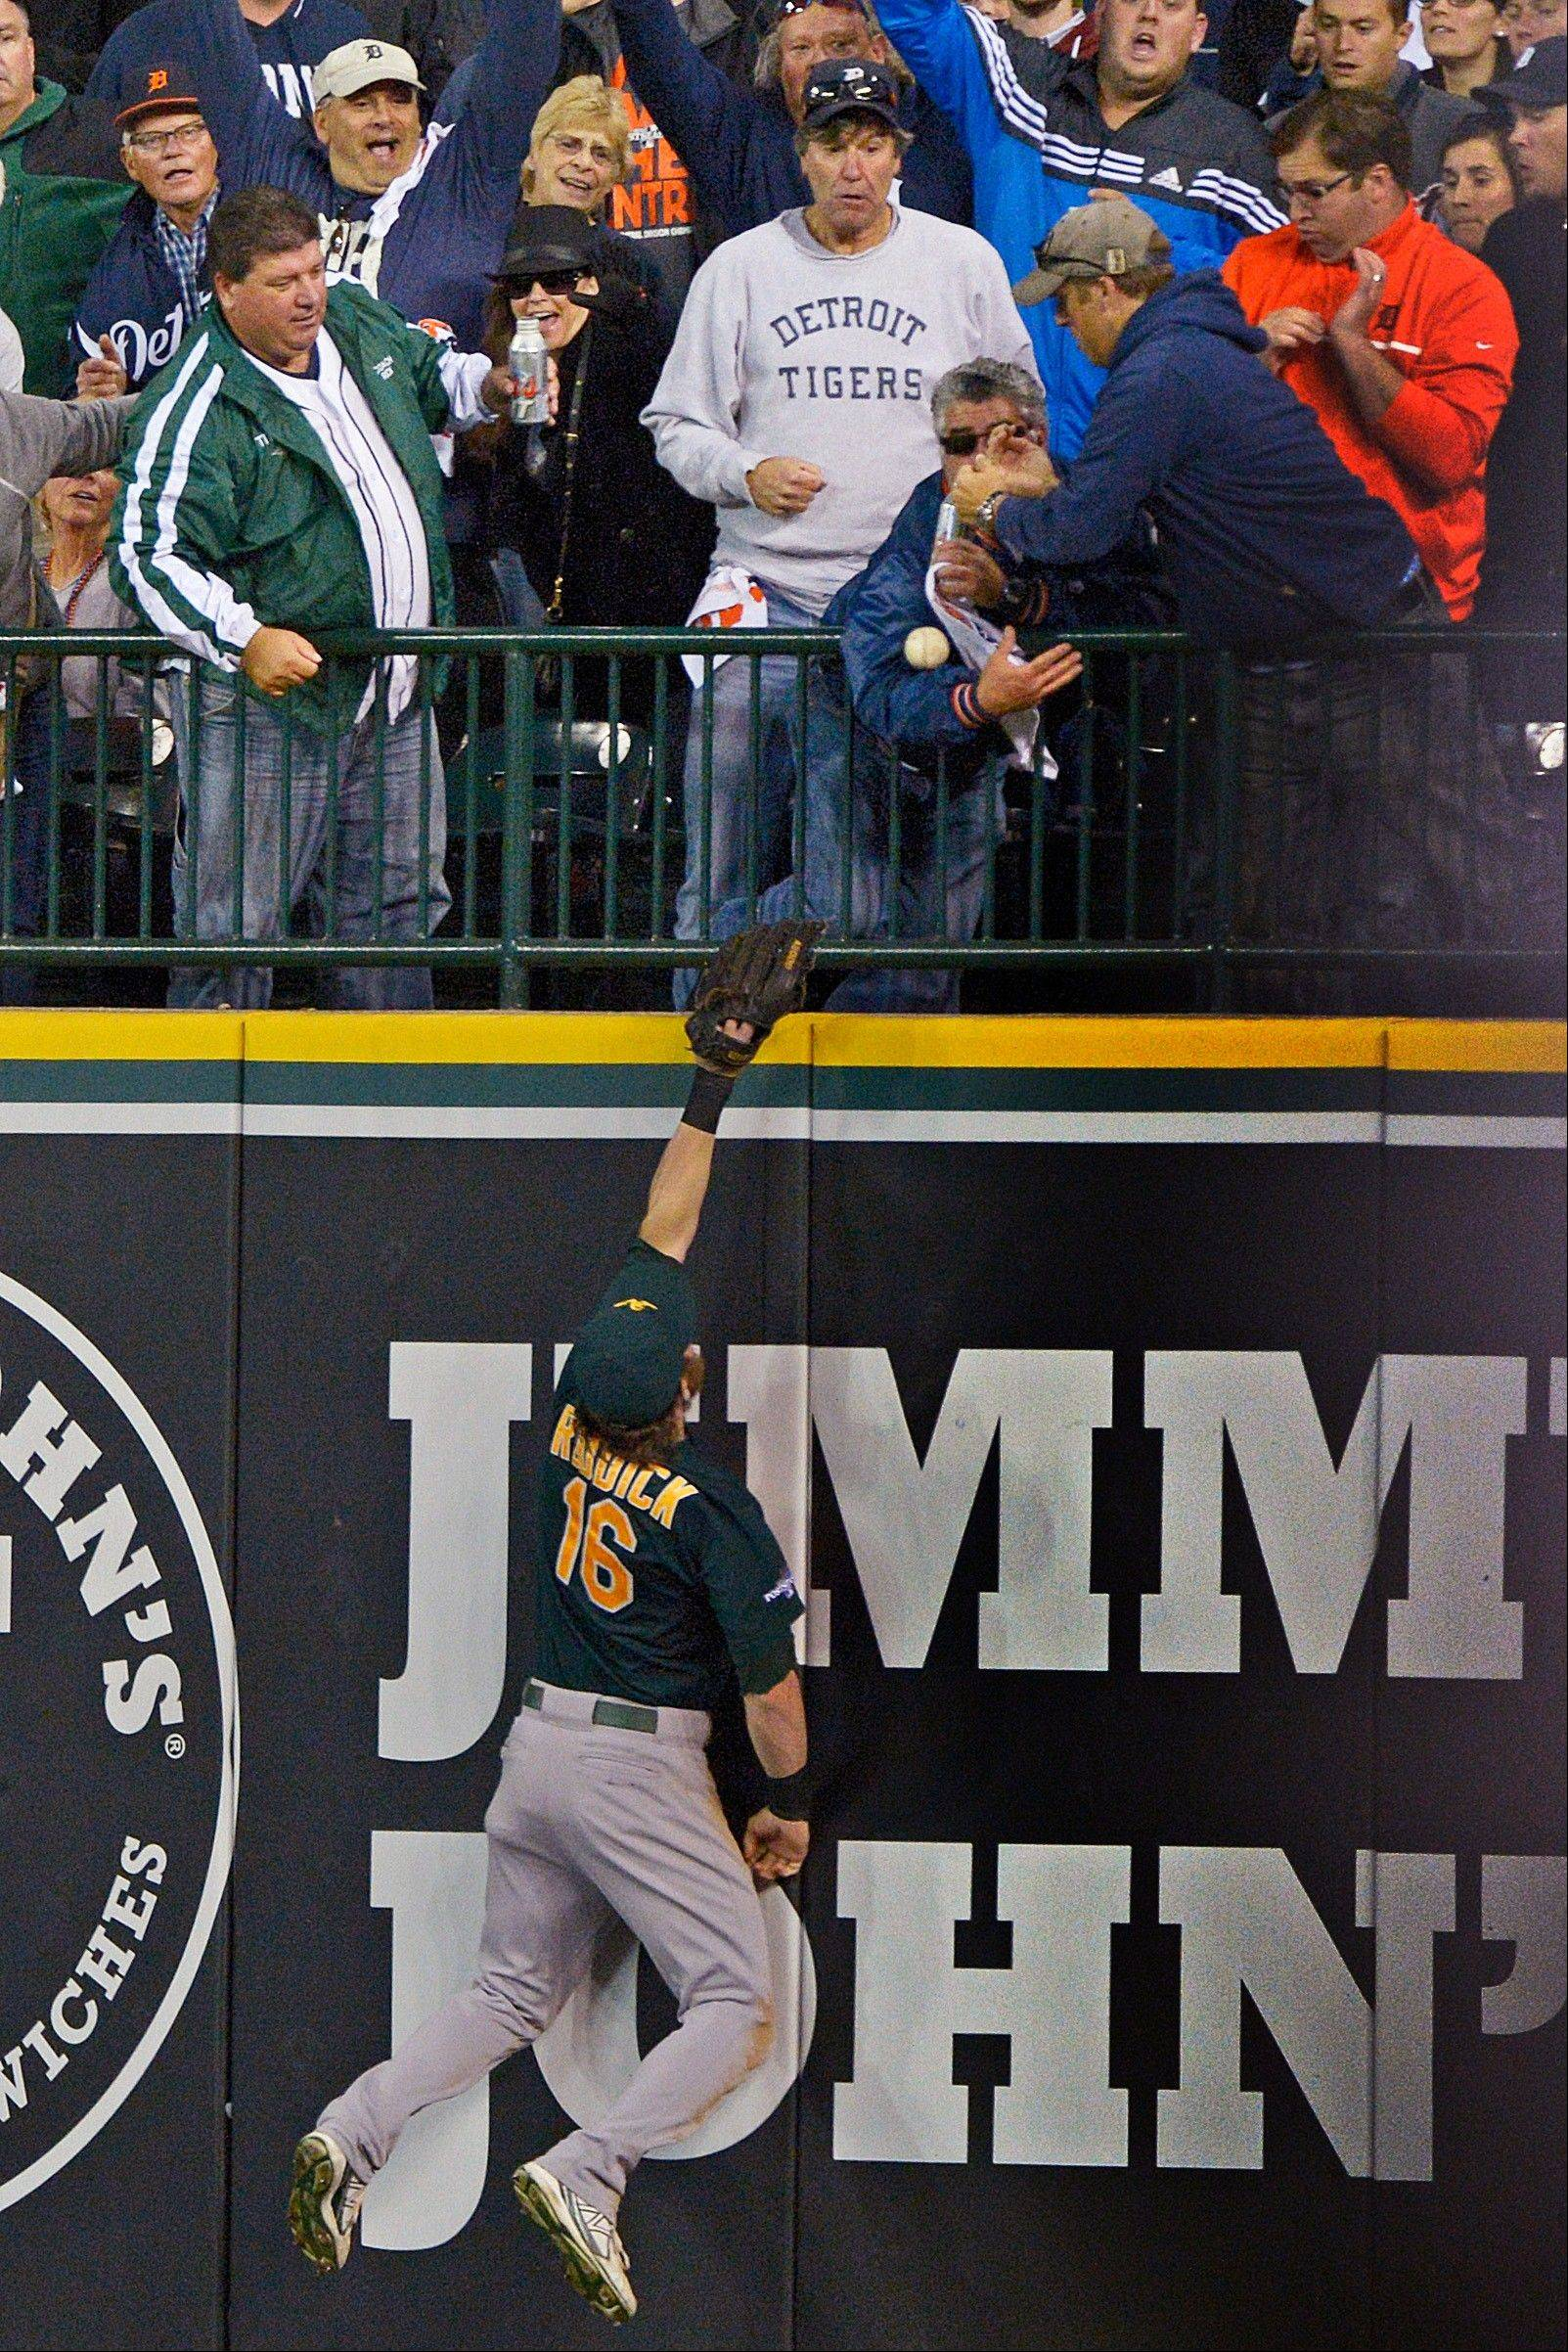 Oakland Athletics right fielder Josh Reddick stretches but is unable to catch a home run by the Tigers' Victor Martinez during the seventh inning Tuesday n Detroit. The Tigers won 8-6.